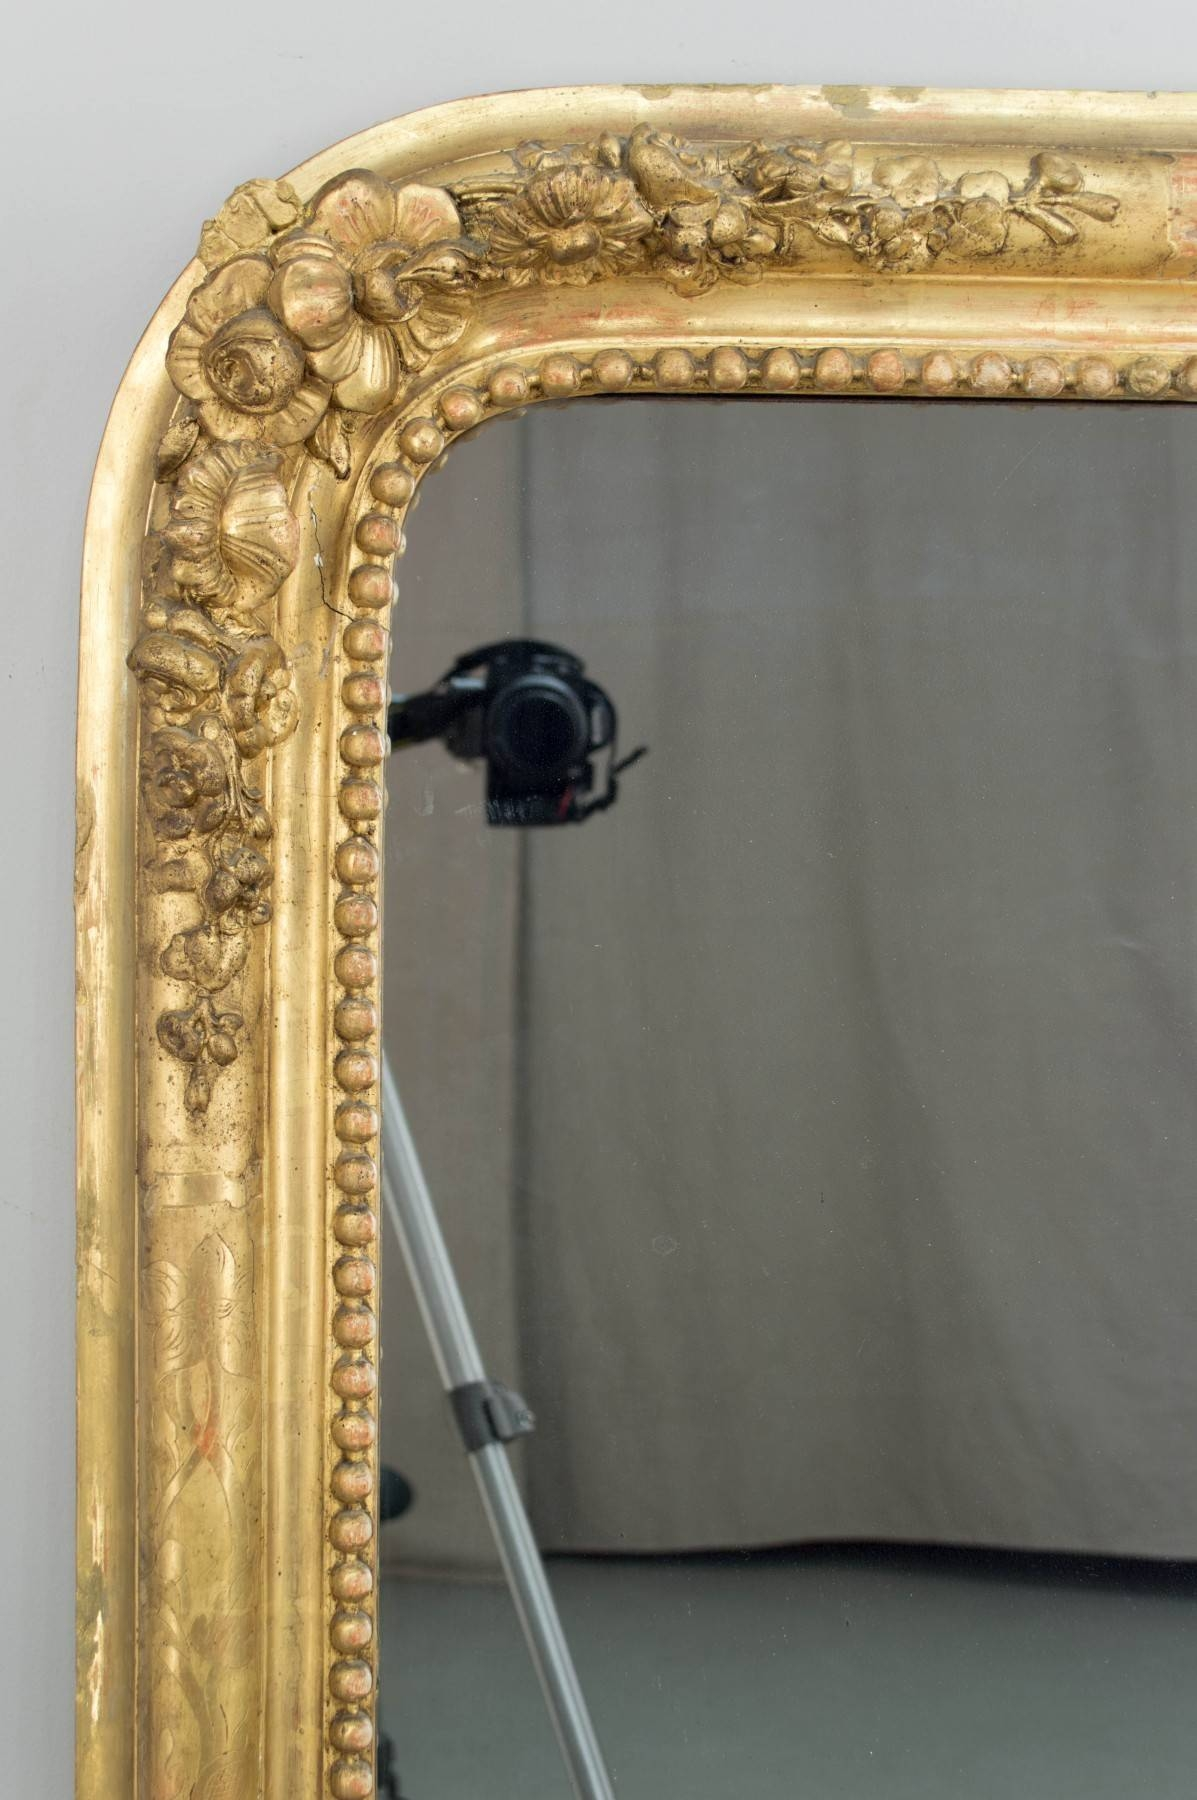 19Th Century French Gilt Mirror – Palm Beach Art, Antique & Design intended for French Gilt Mirrors (Image 1 of 15)